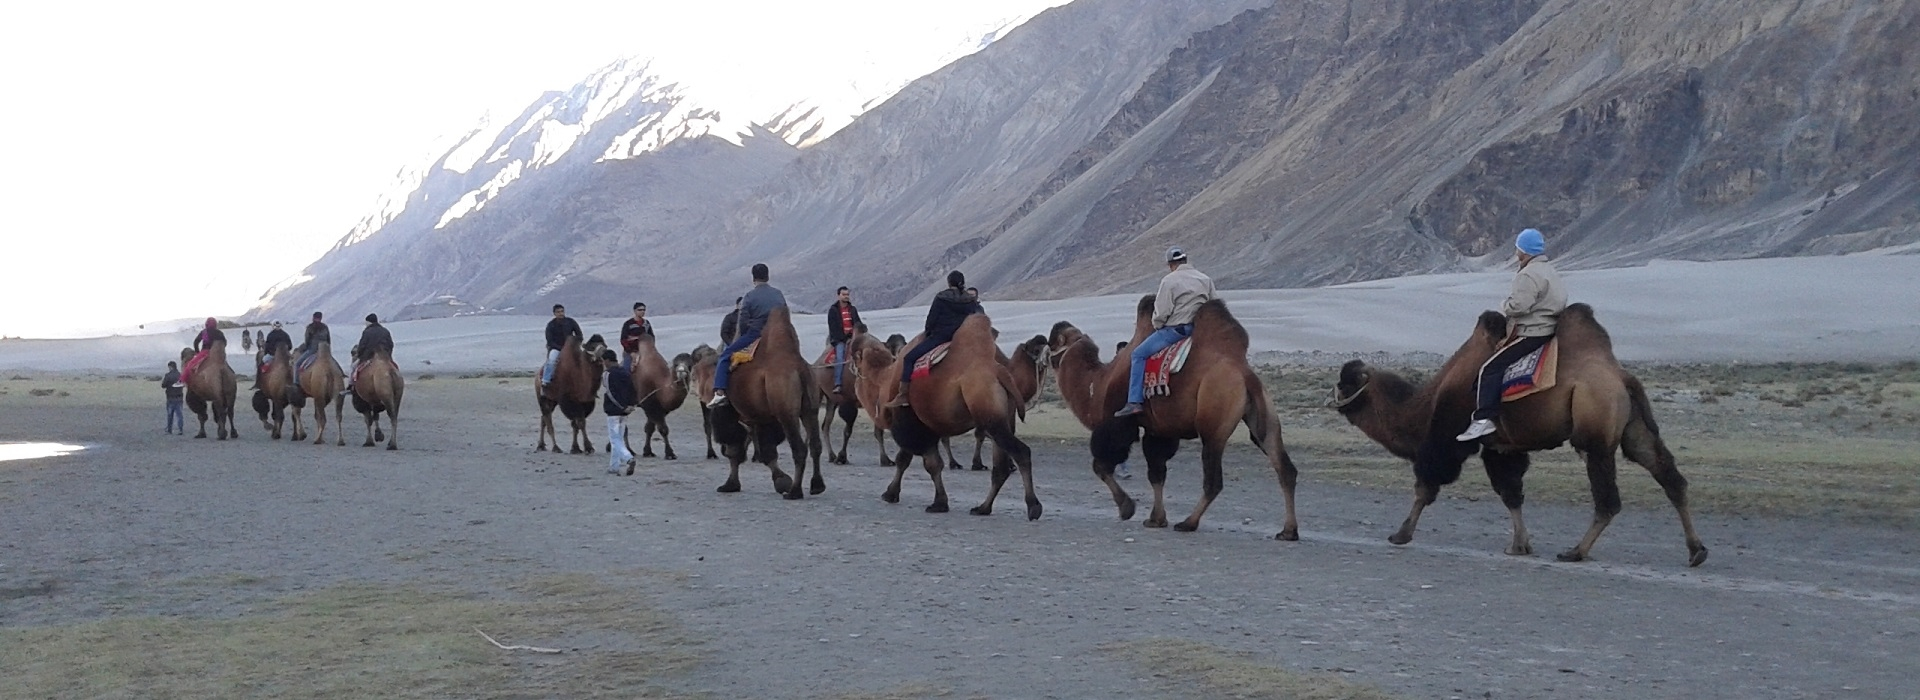 SHYOK & NUBRA VALLEY